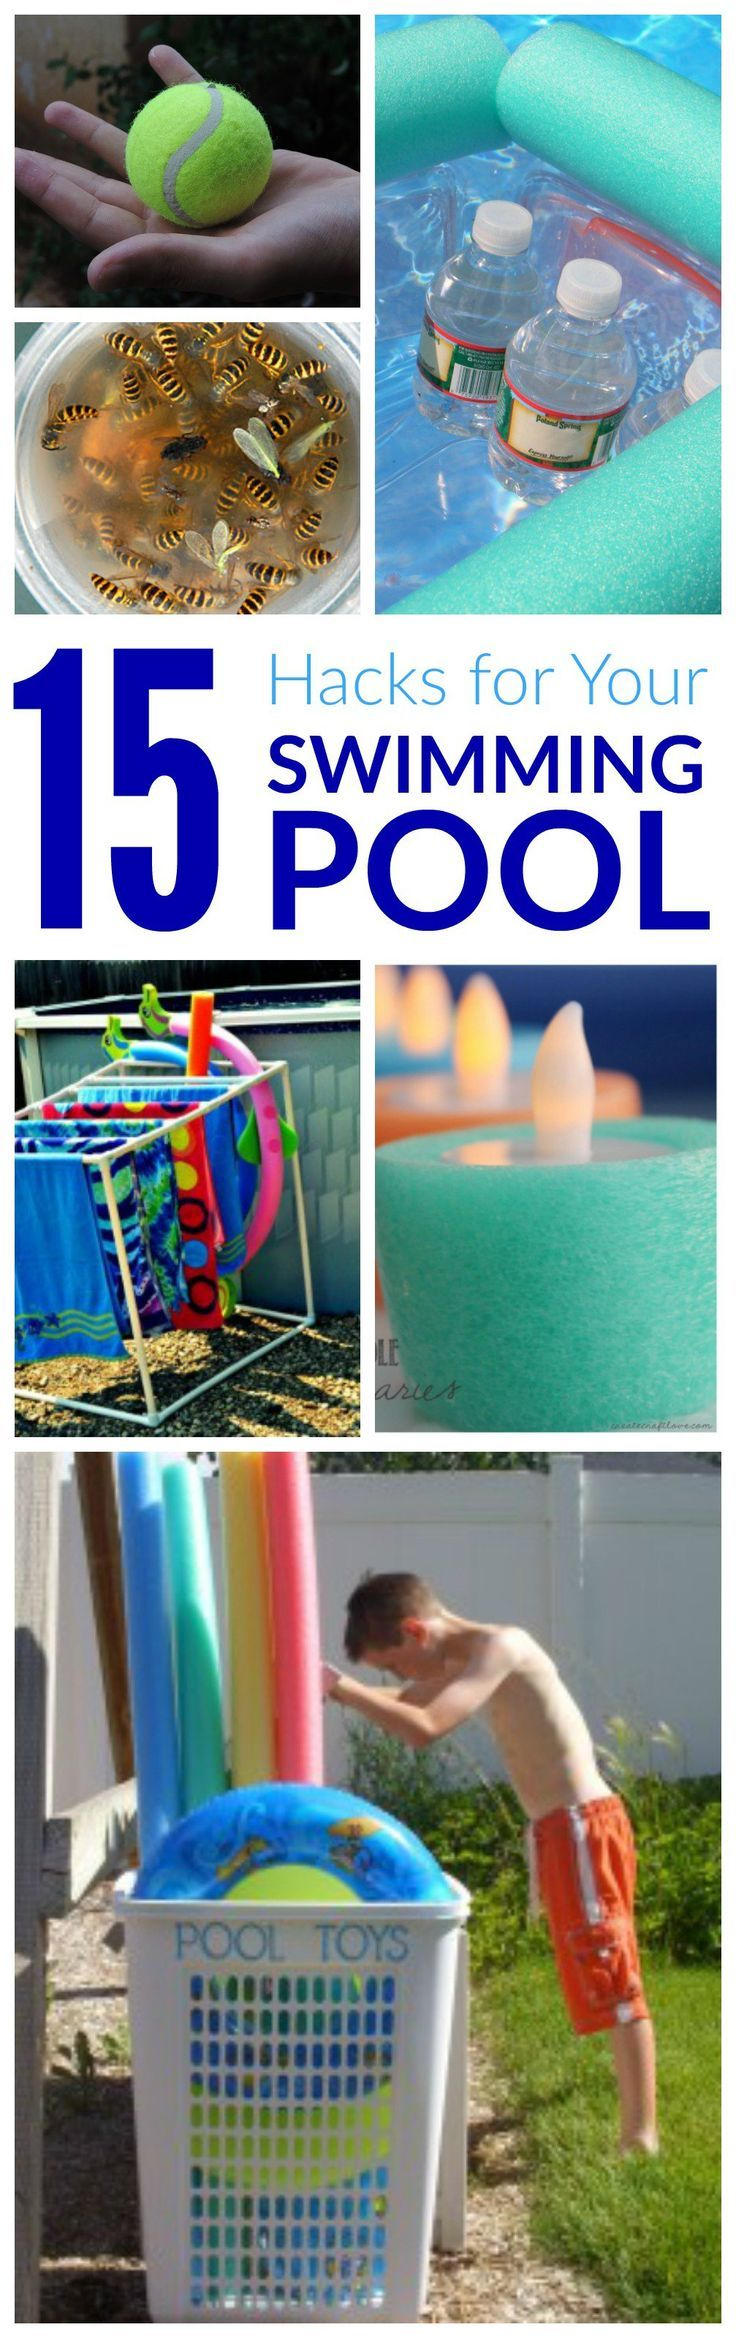 25 Best Ideas About Pool Games Kids On Pinterest Pool Games Water Games And Pool Party Games